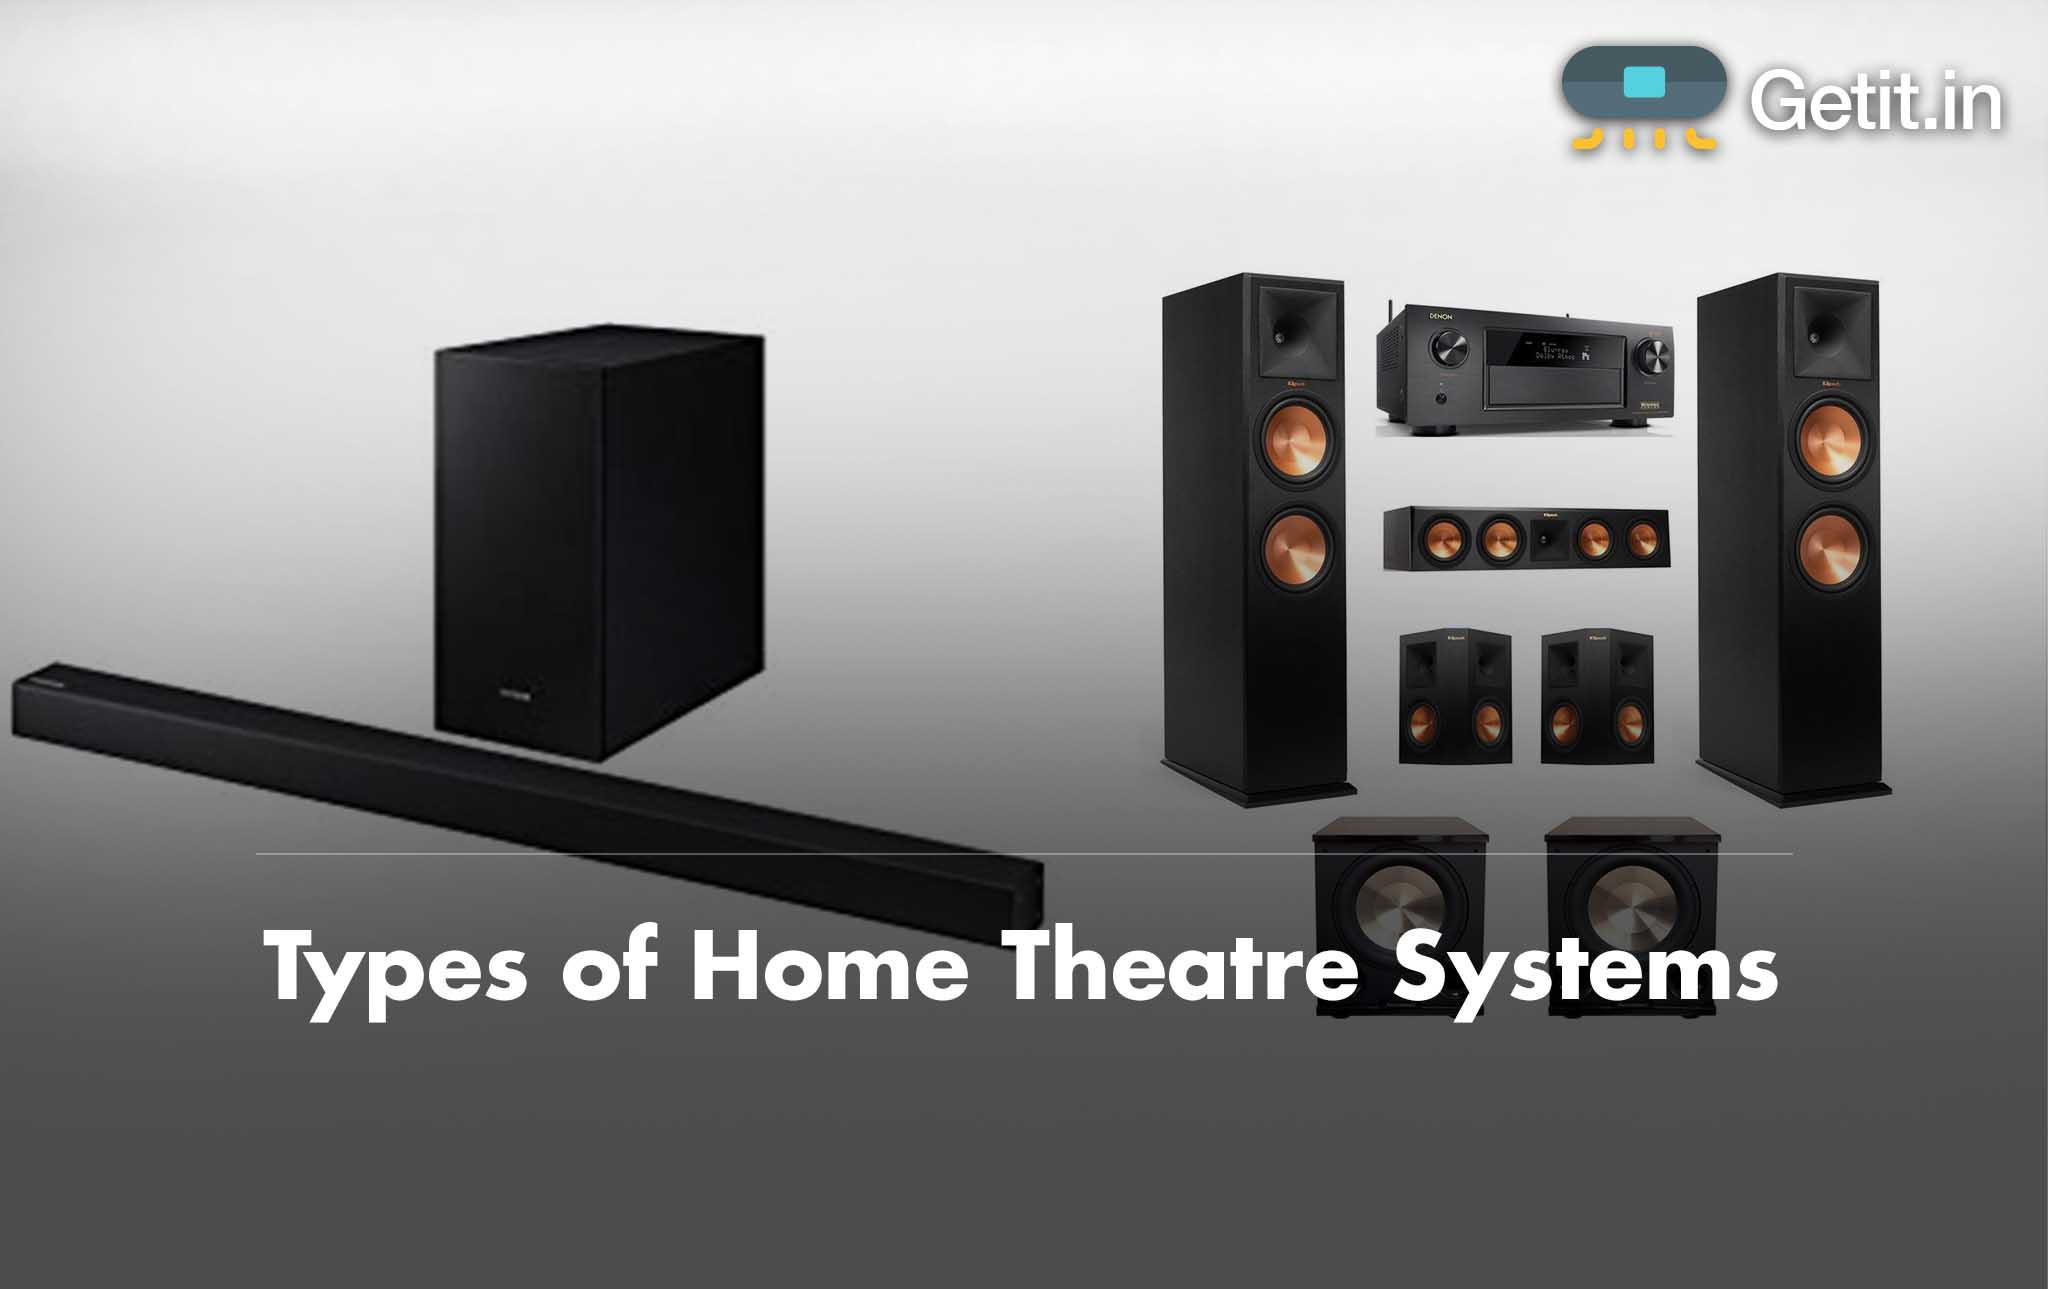 Types of Home Theatre Systems